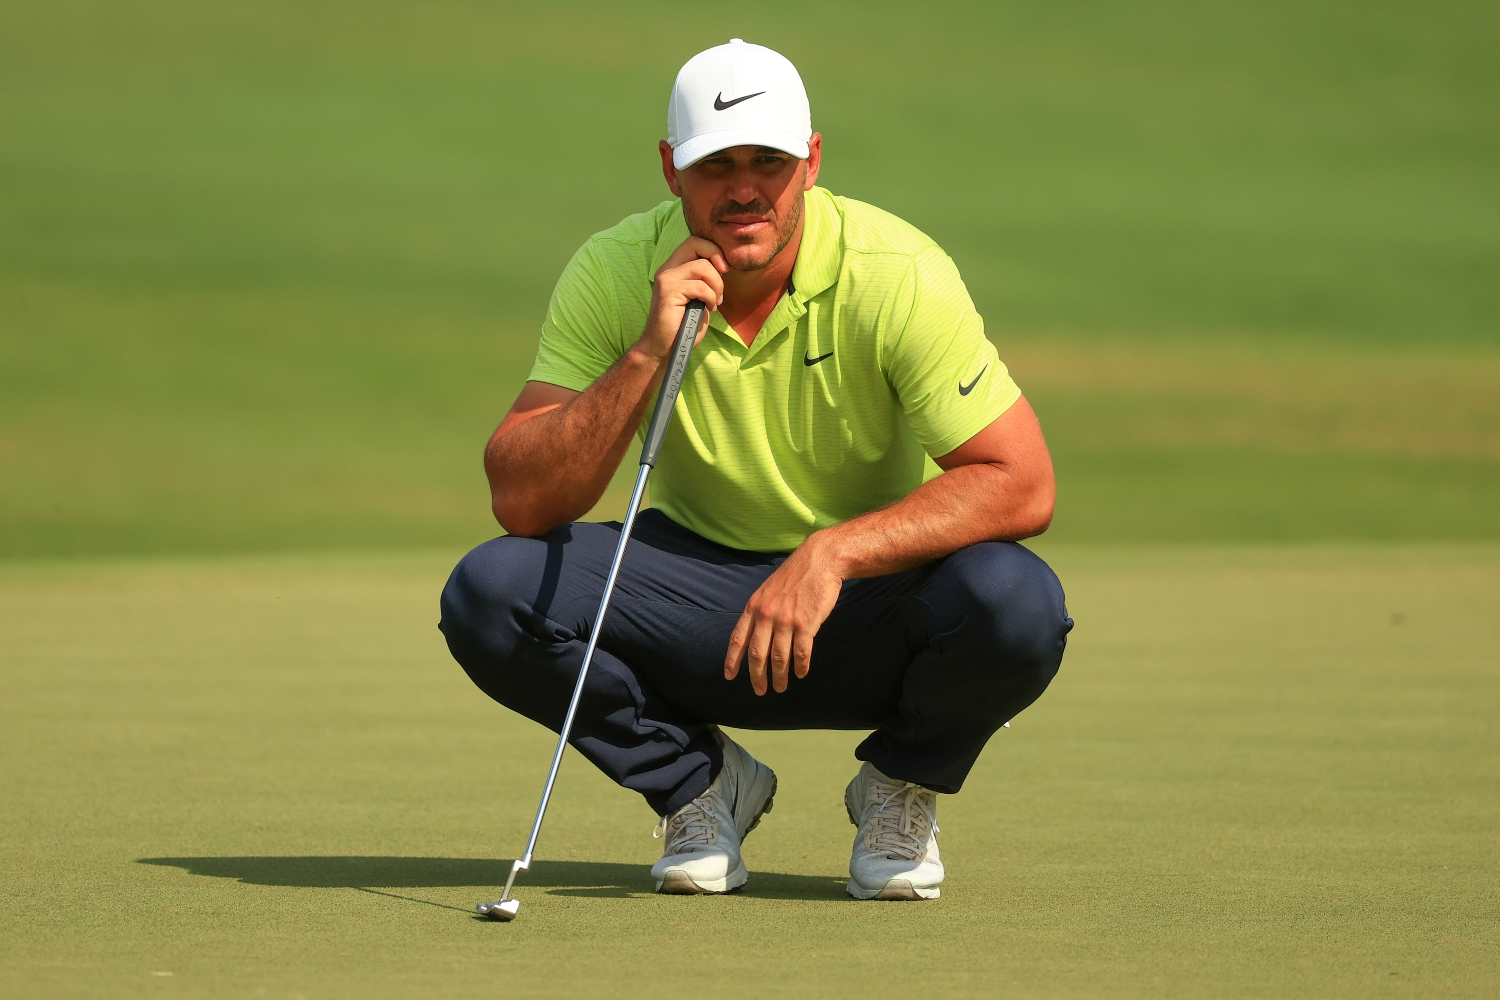 Brooks Koepka lines up a putt during the World Golf Championships-Workday Championship at The Concession.